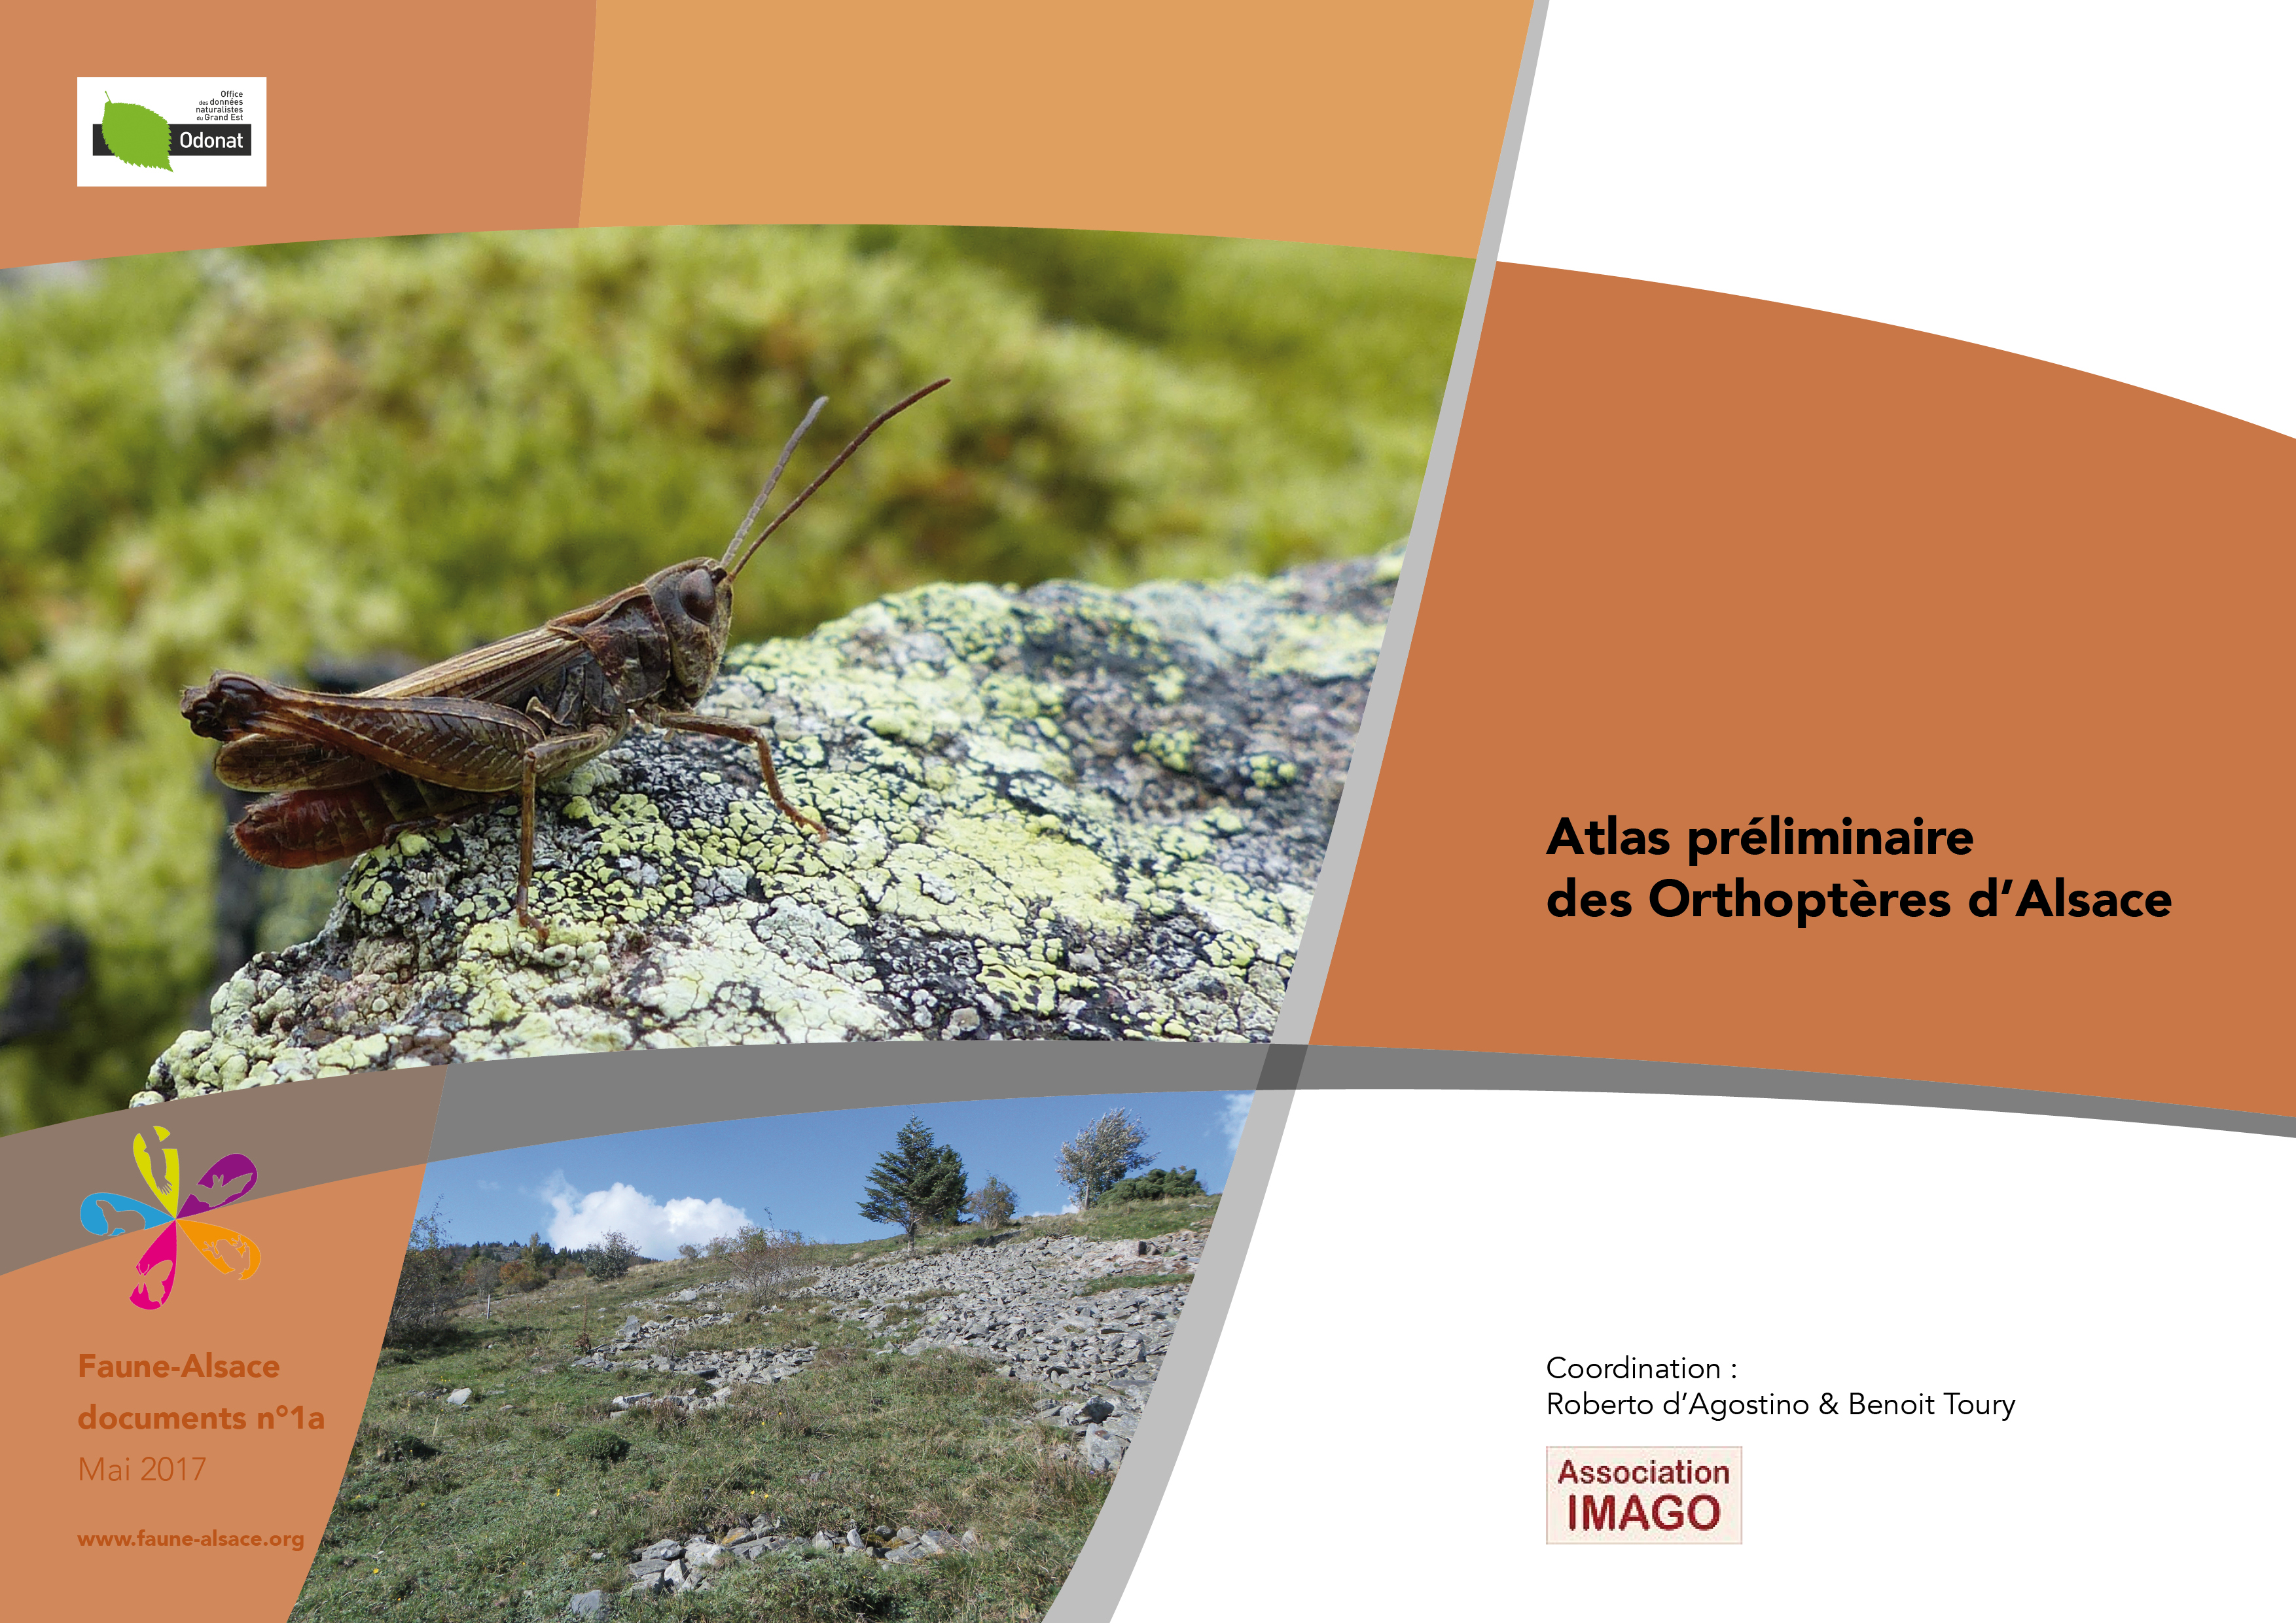 http://files.biolovision.net/www.faune-alsace.org/userfiles/Insectes/ORTHOPTERA/FAdoc1a2017atlasorthoptera.jpg